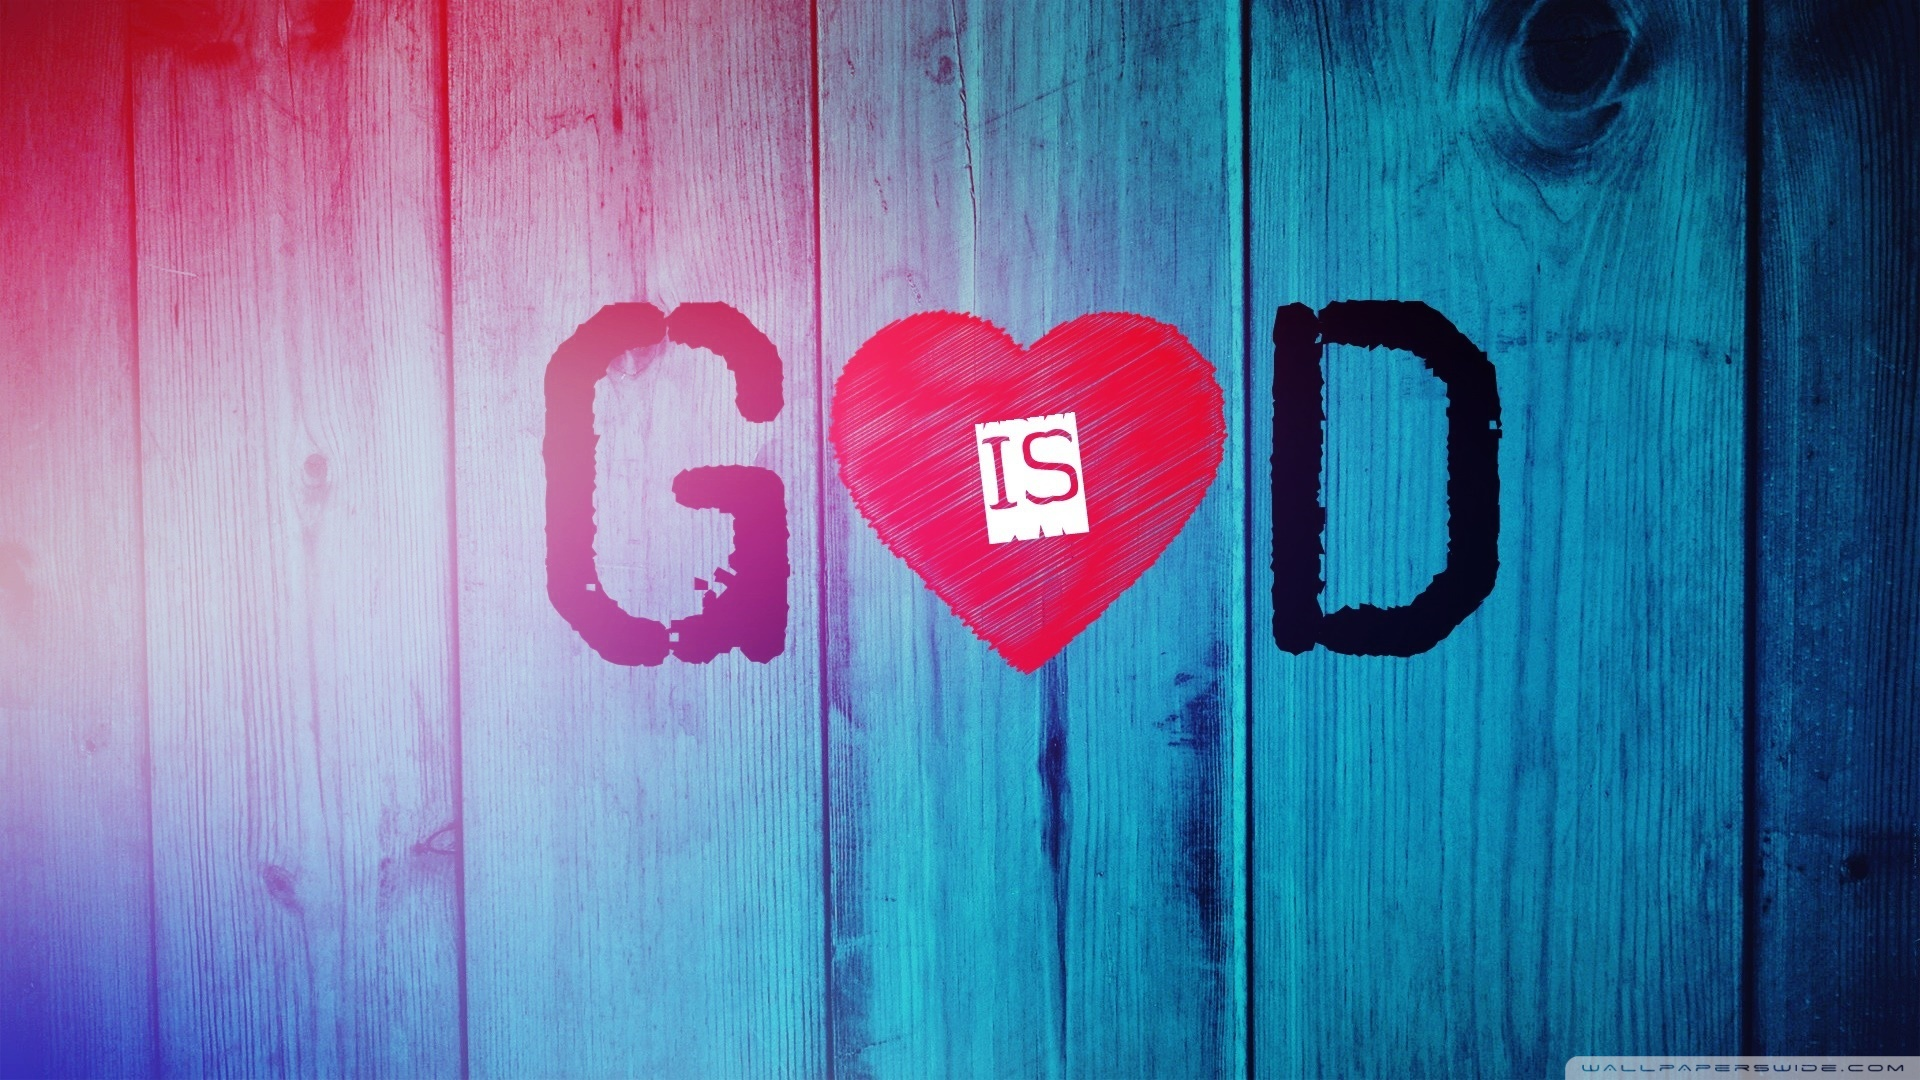 Related Wallpapers God Is Love Hd 185677 Hd Wallpaper